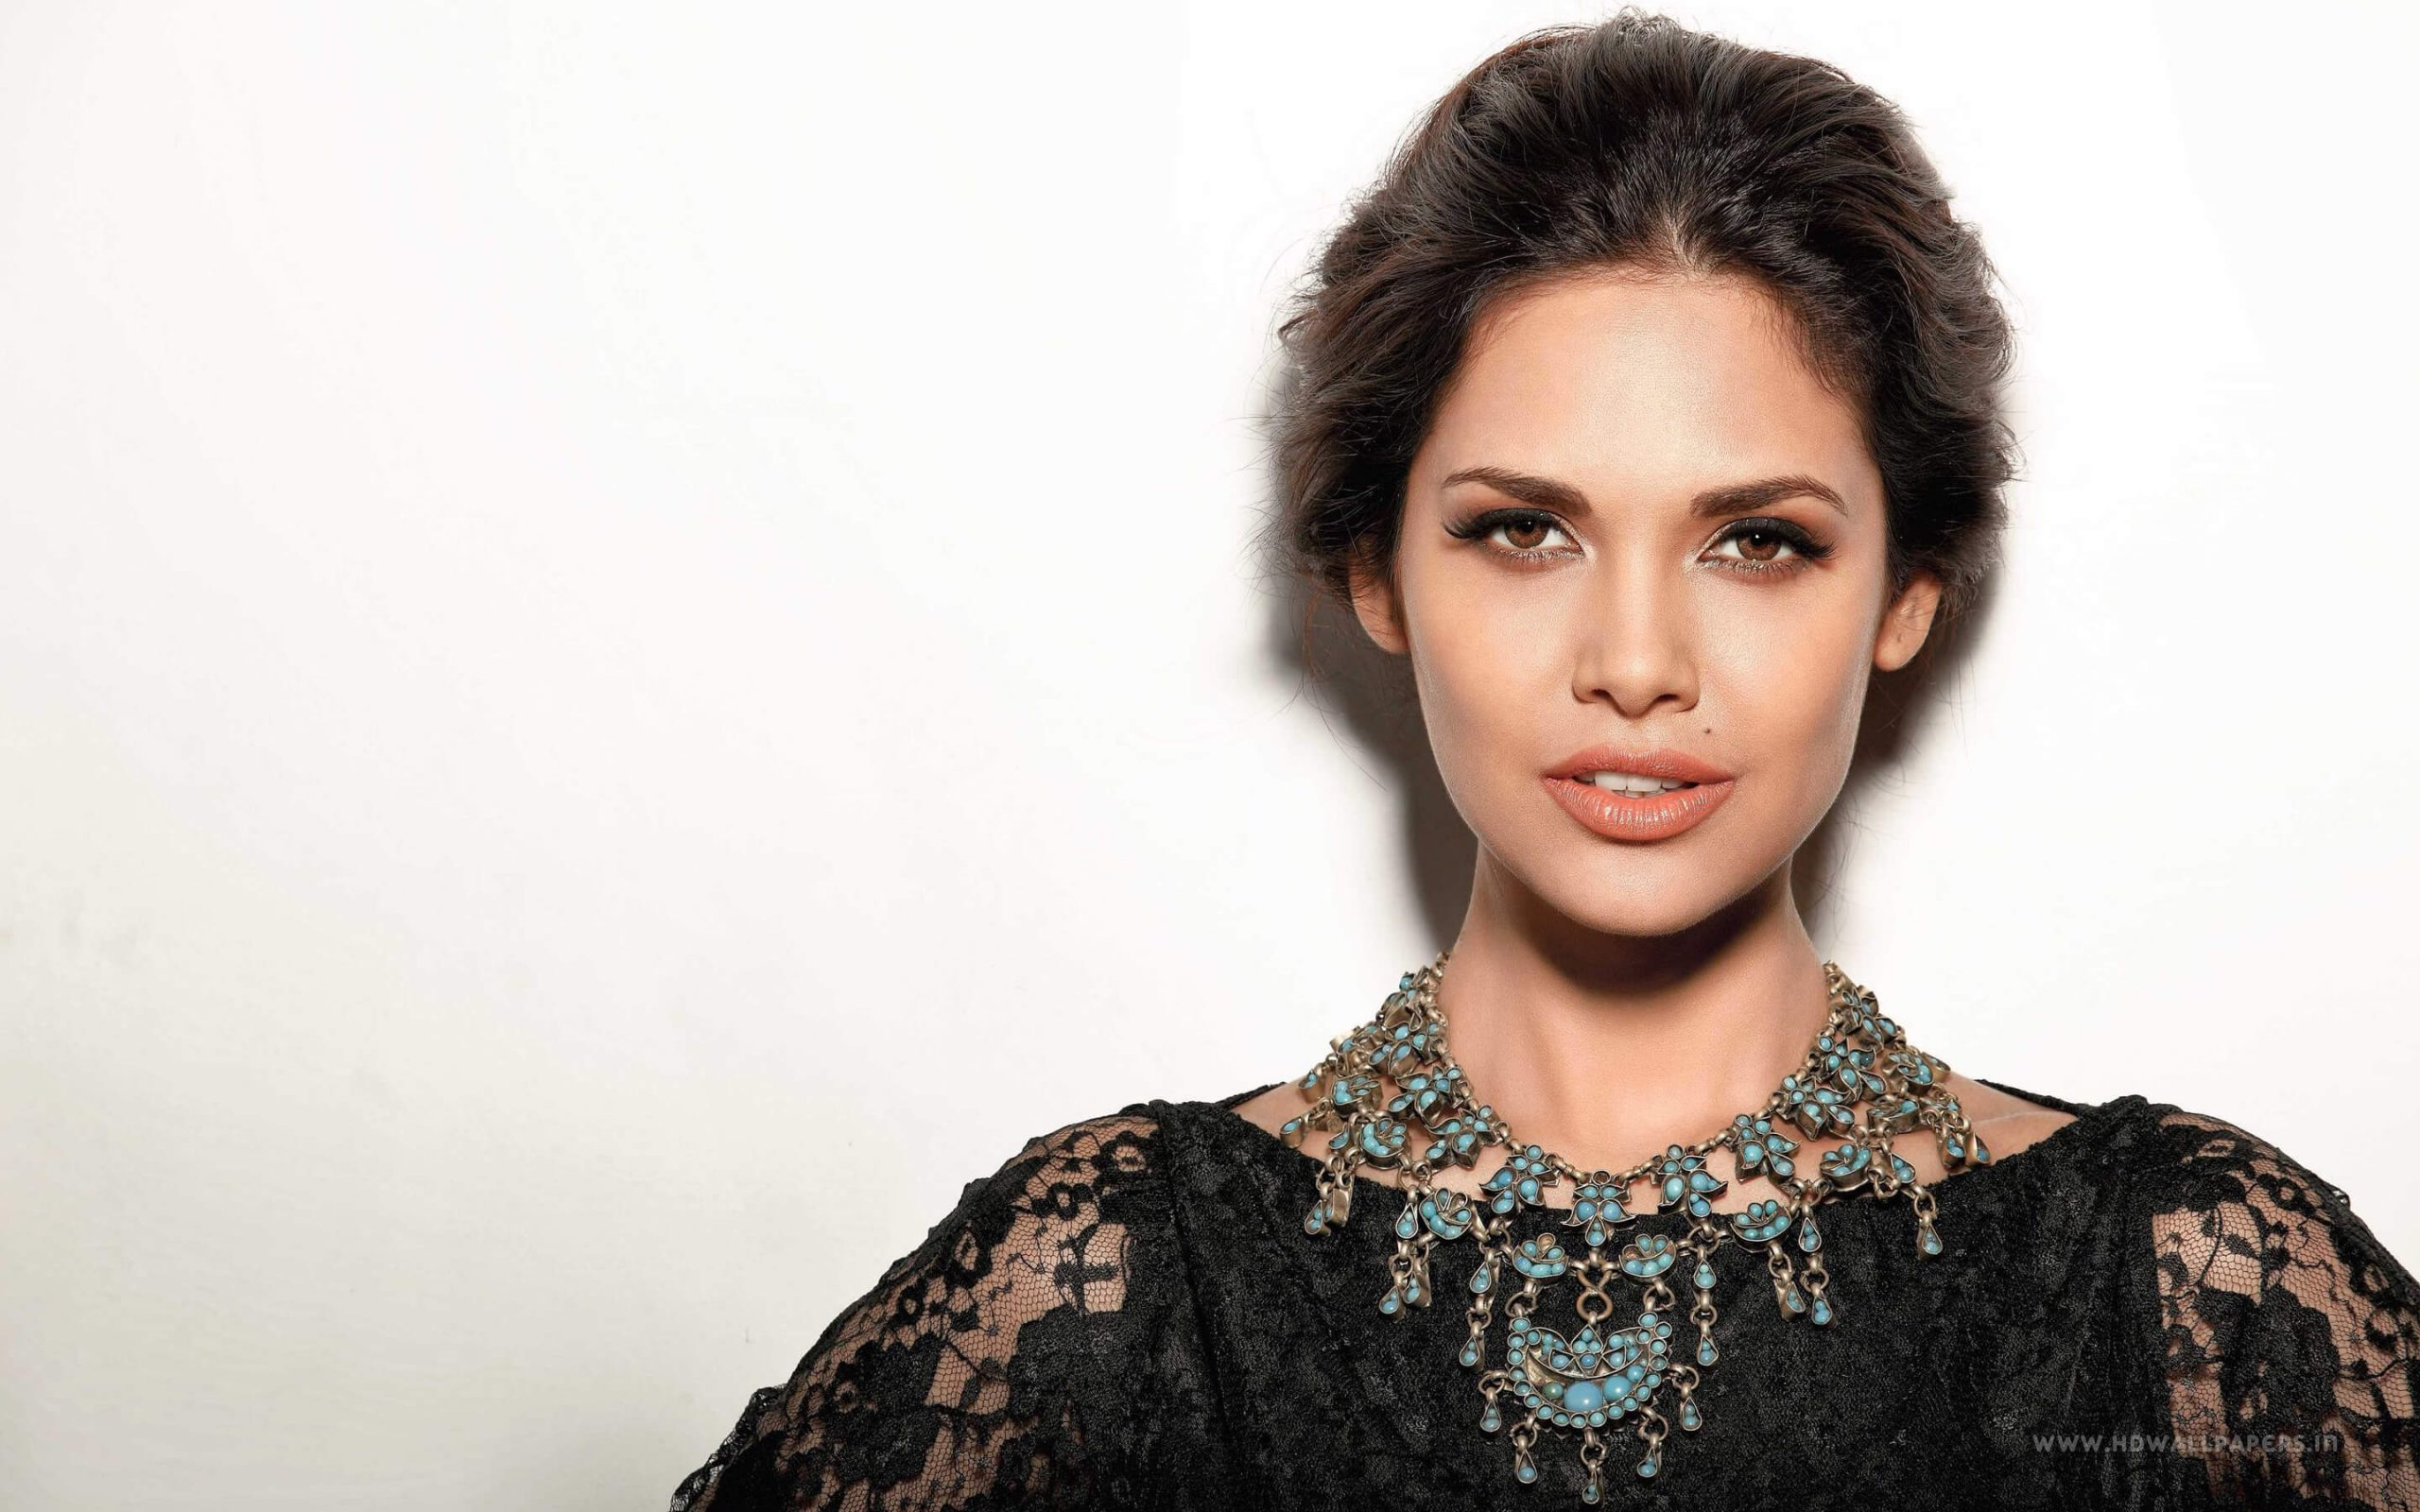 Esha Gupta Images(photos), Age, Height, Net Worth, Date Of Birth, Family, Biography, Son, Marriage, Boyfriend, Education, Awards, Hairstyle, Instagram, Twitter, Facebook, Wiki, Imdb (34)